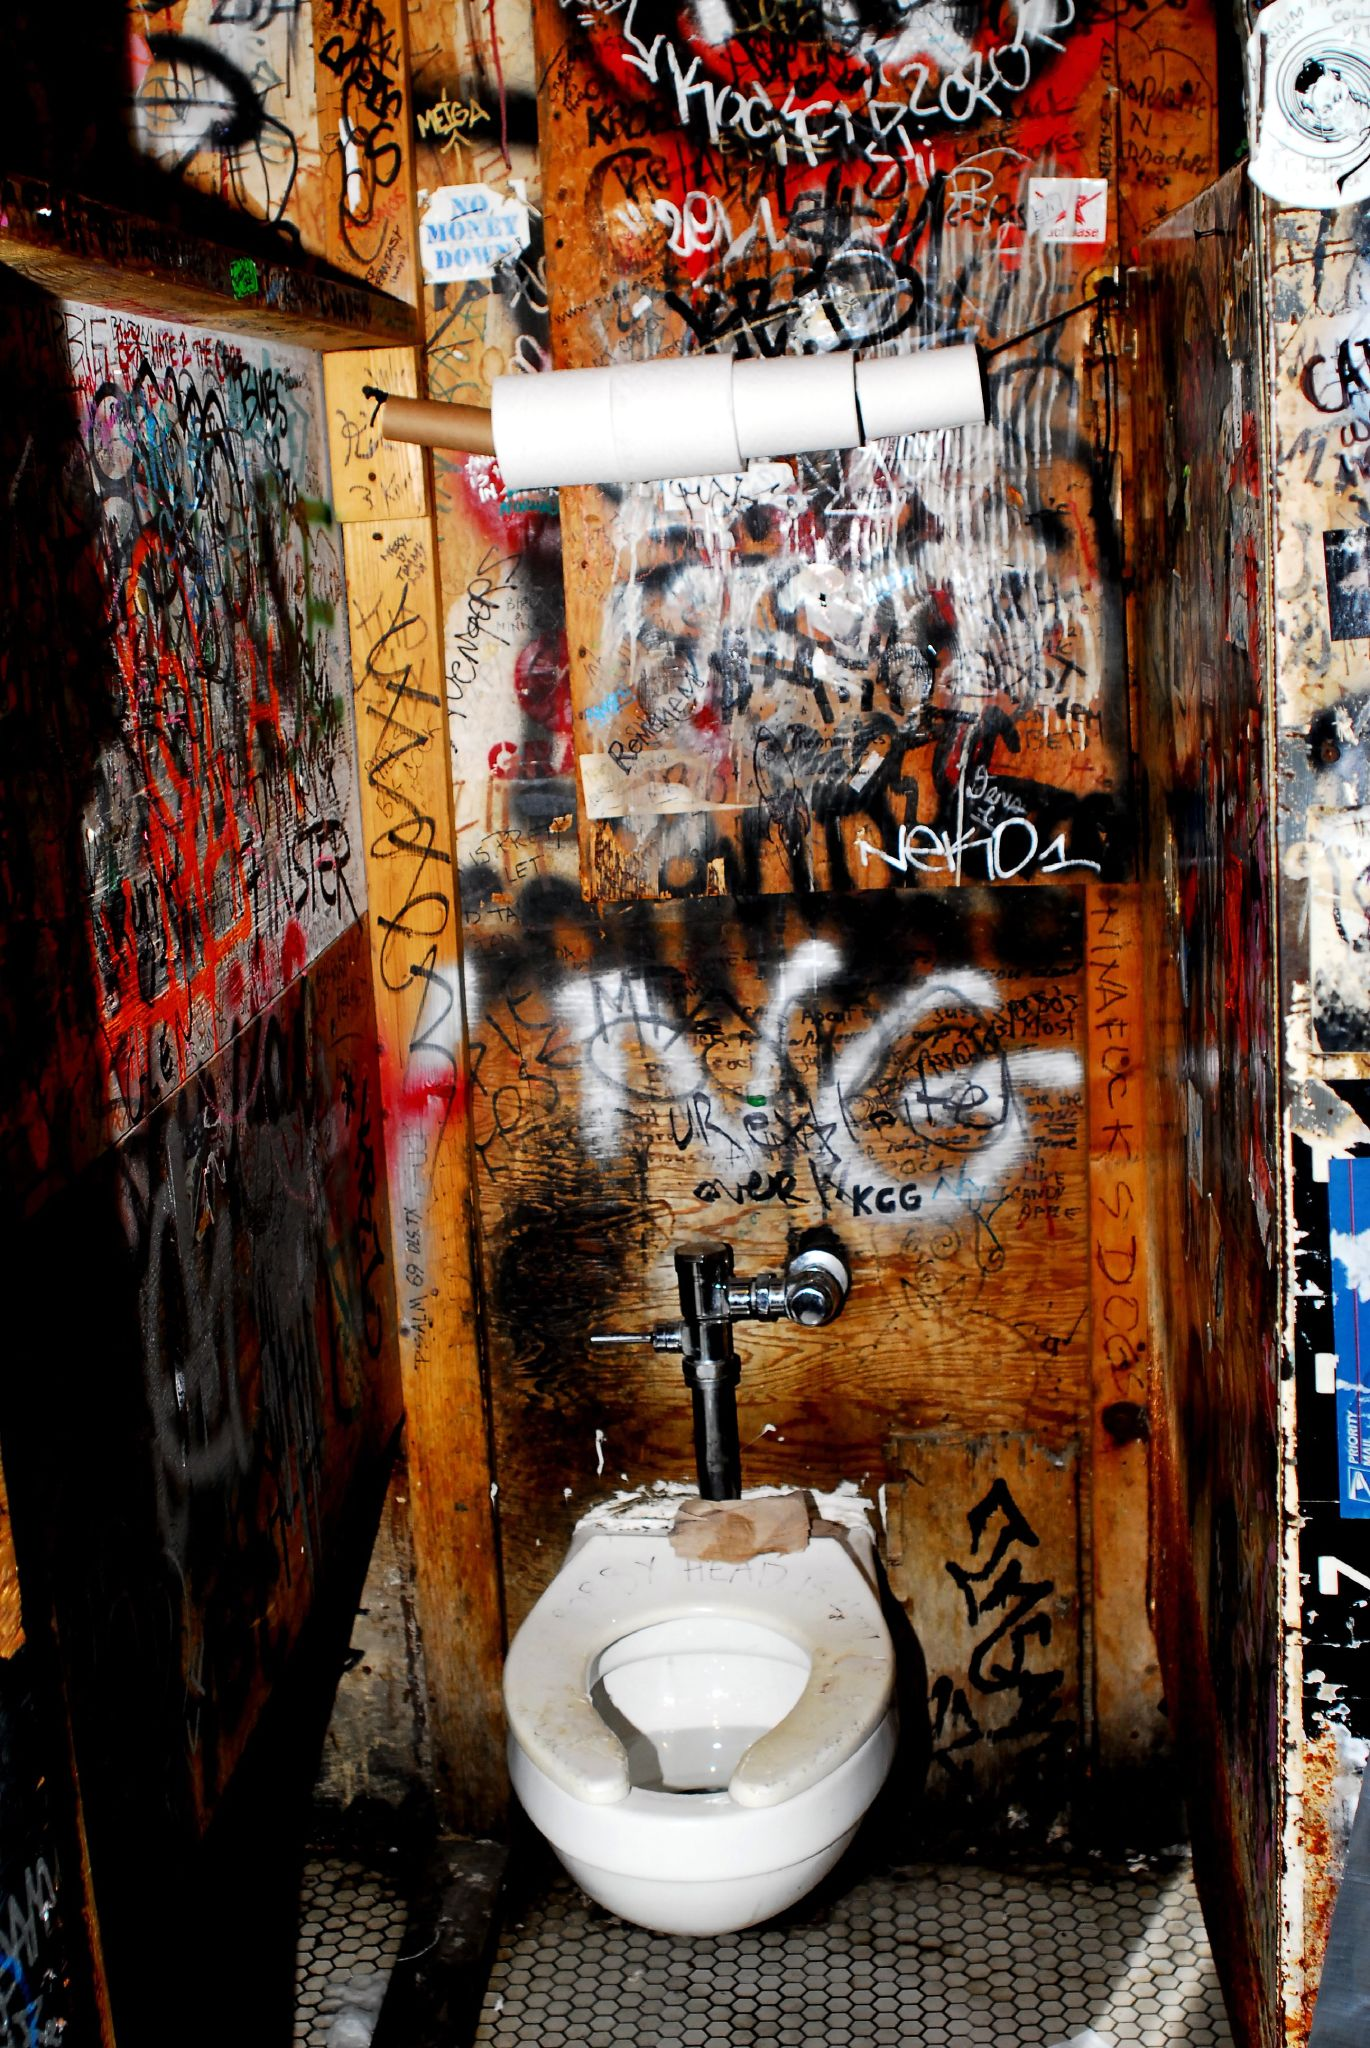 CBGB bathroom stall